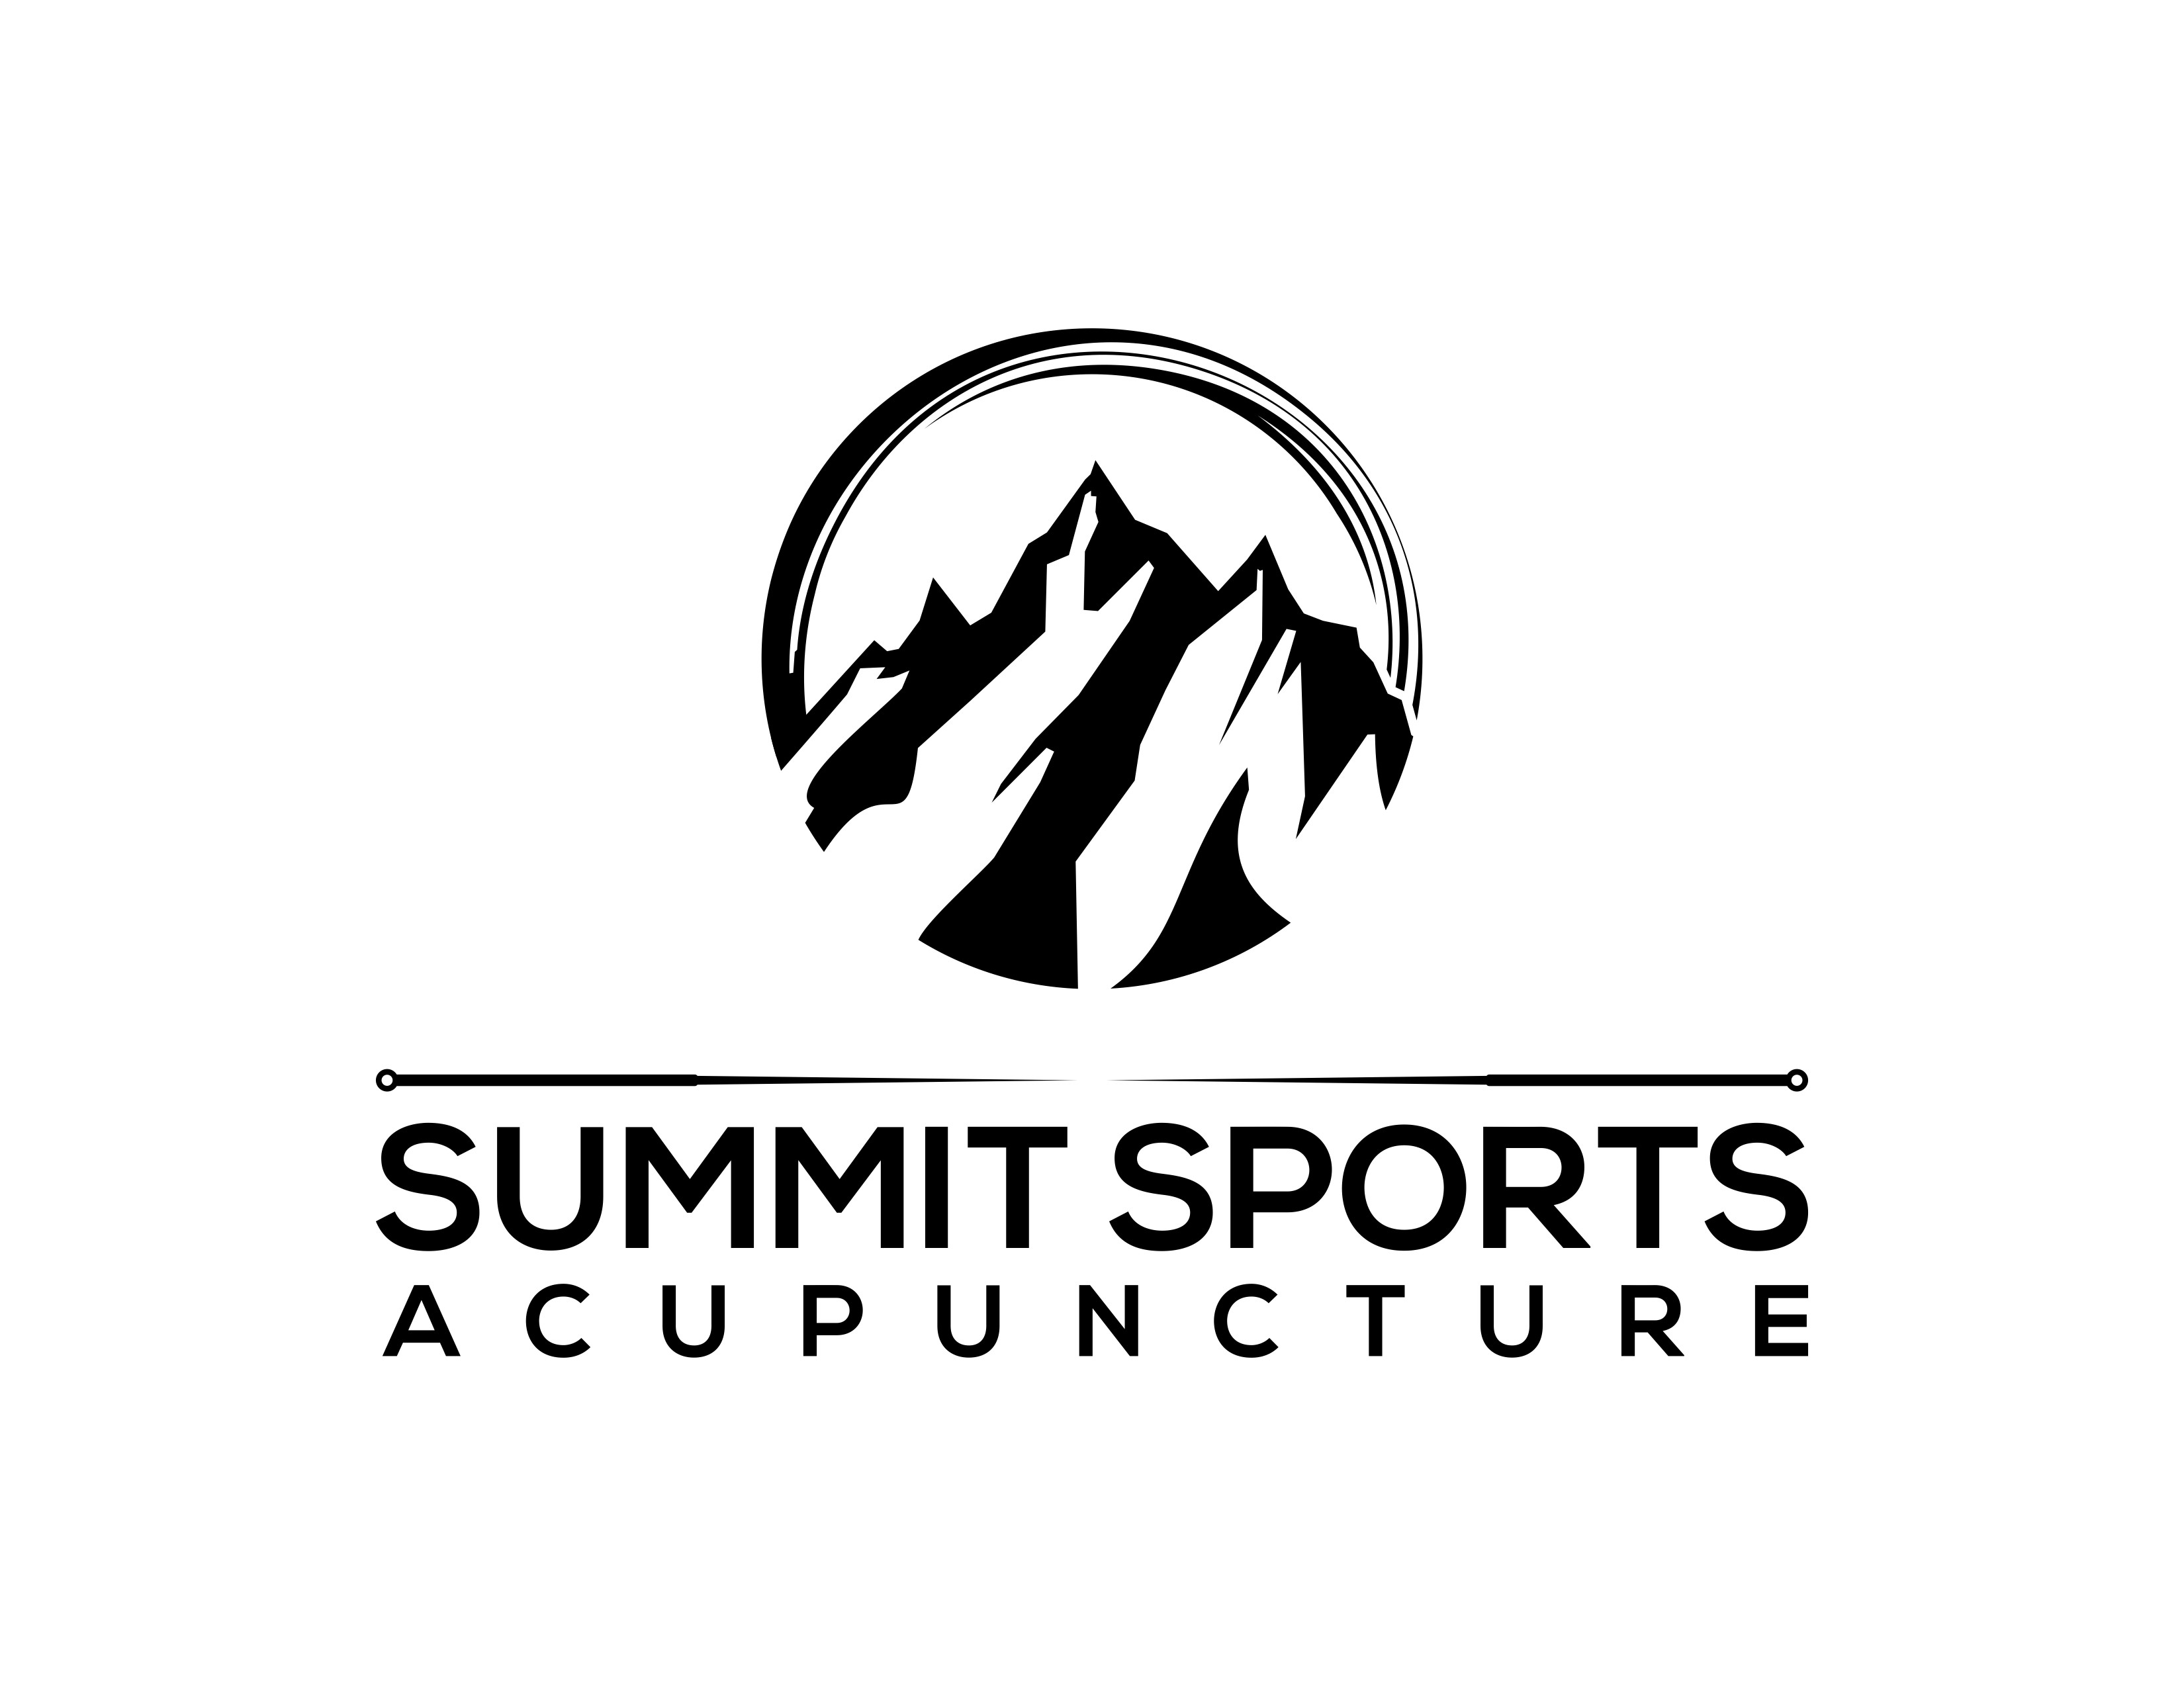 Mountain based Acupuncture and Sports Medicine Clinic Needs Great Logo